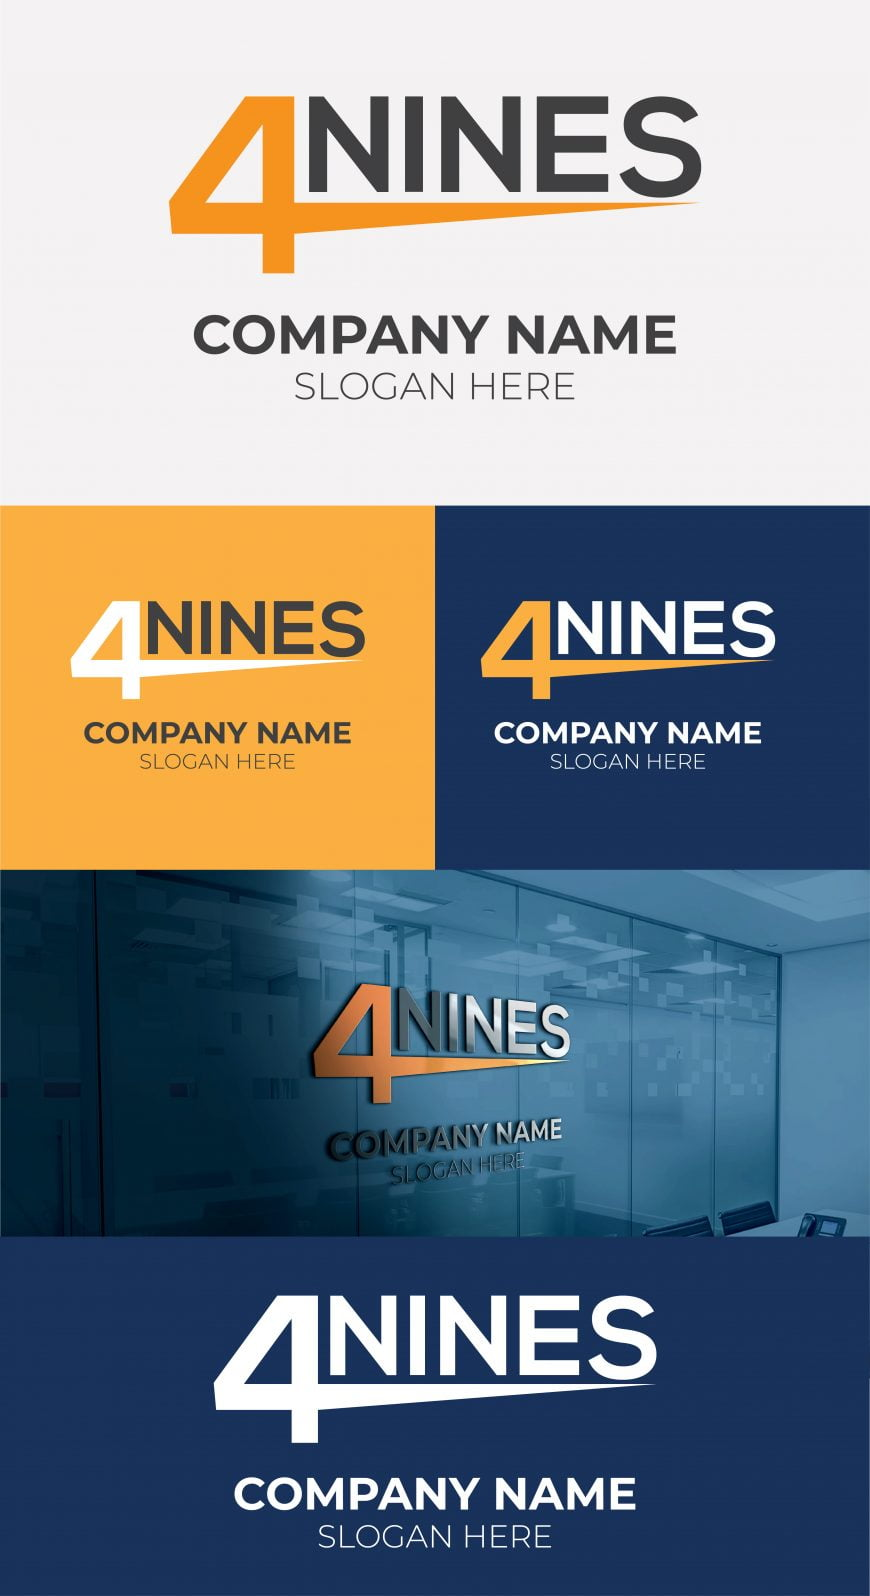 4-NINES-LOGO-DESIGN-FREE-TEMPLATE-1-scaled